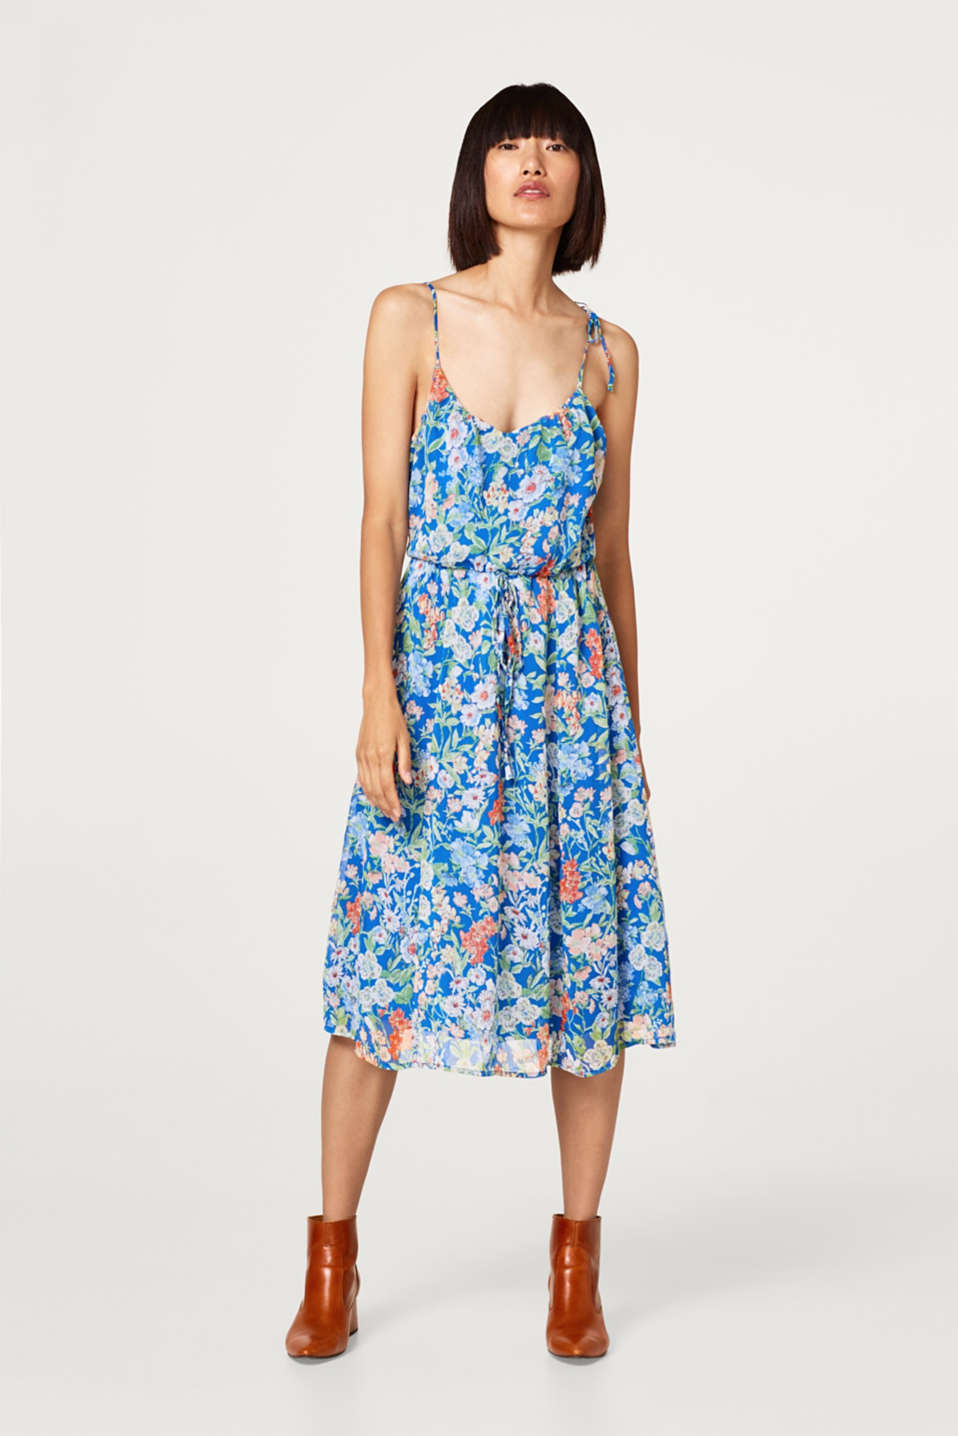 Midi dress made of chiffon with a floral print